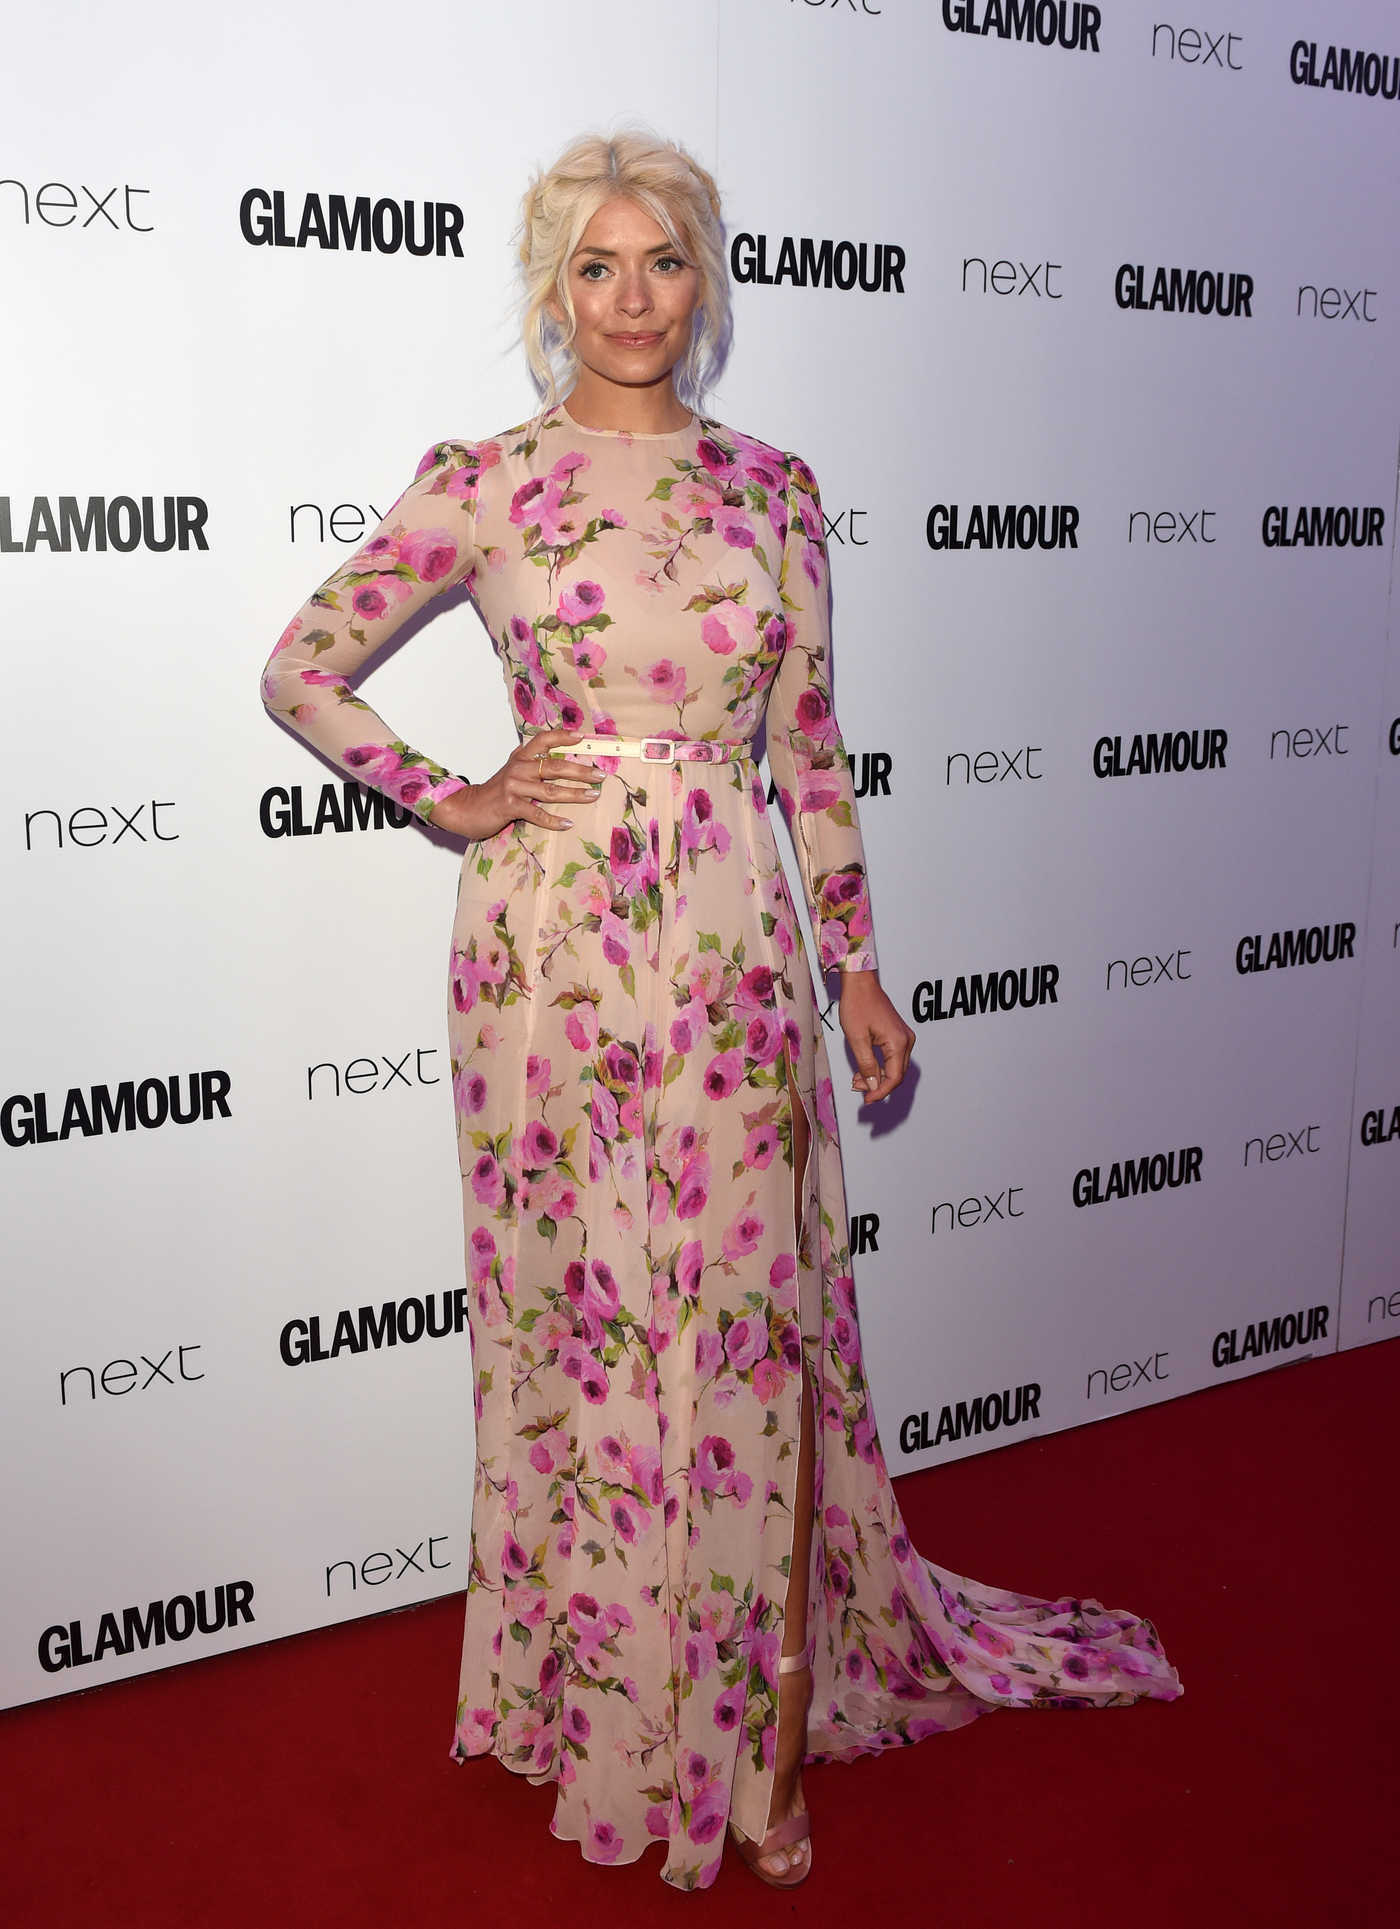 Holly Willoughby at the Glamour Women of The Year Awards in London 06/06/2017